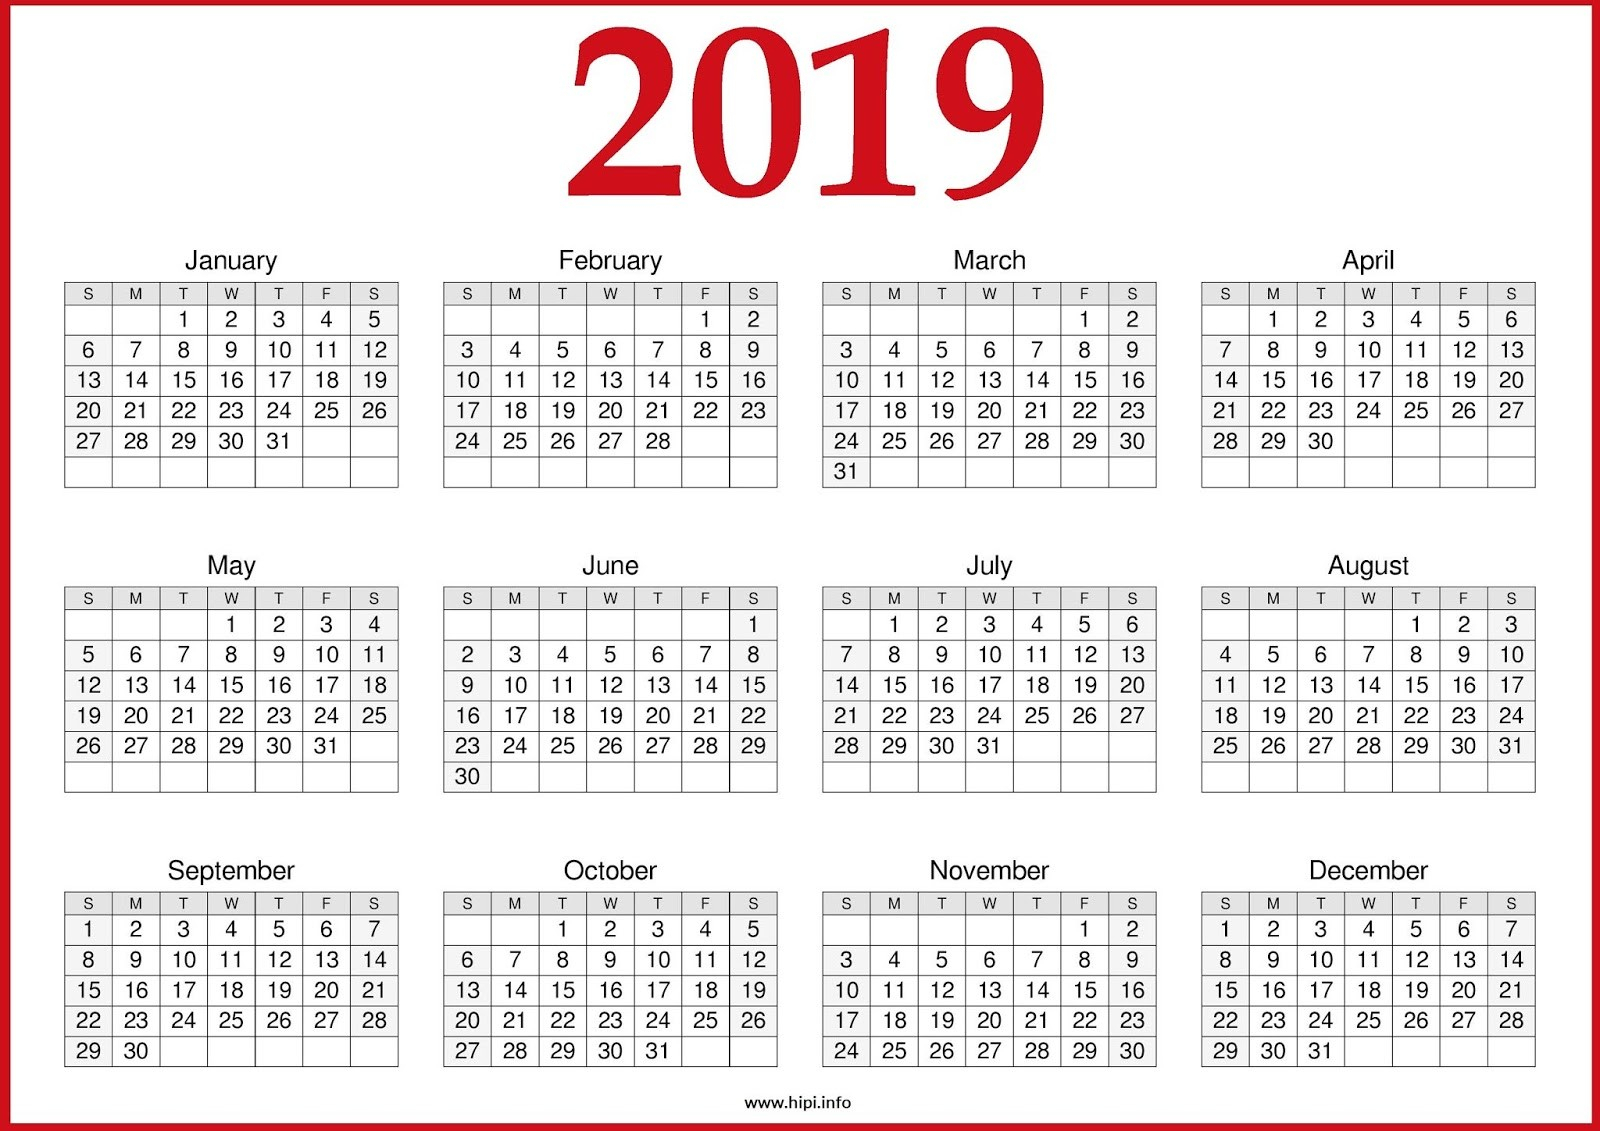 2019 Printable Yearly Calendar One Page - Free August 2019 Calendar in Blank Year Calendar On One Page